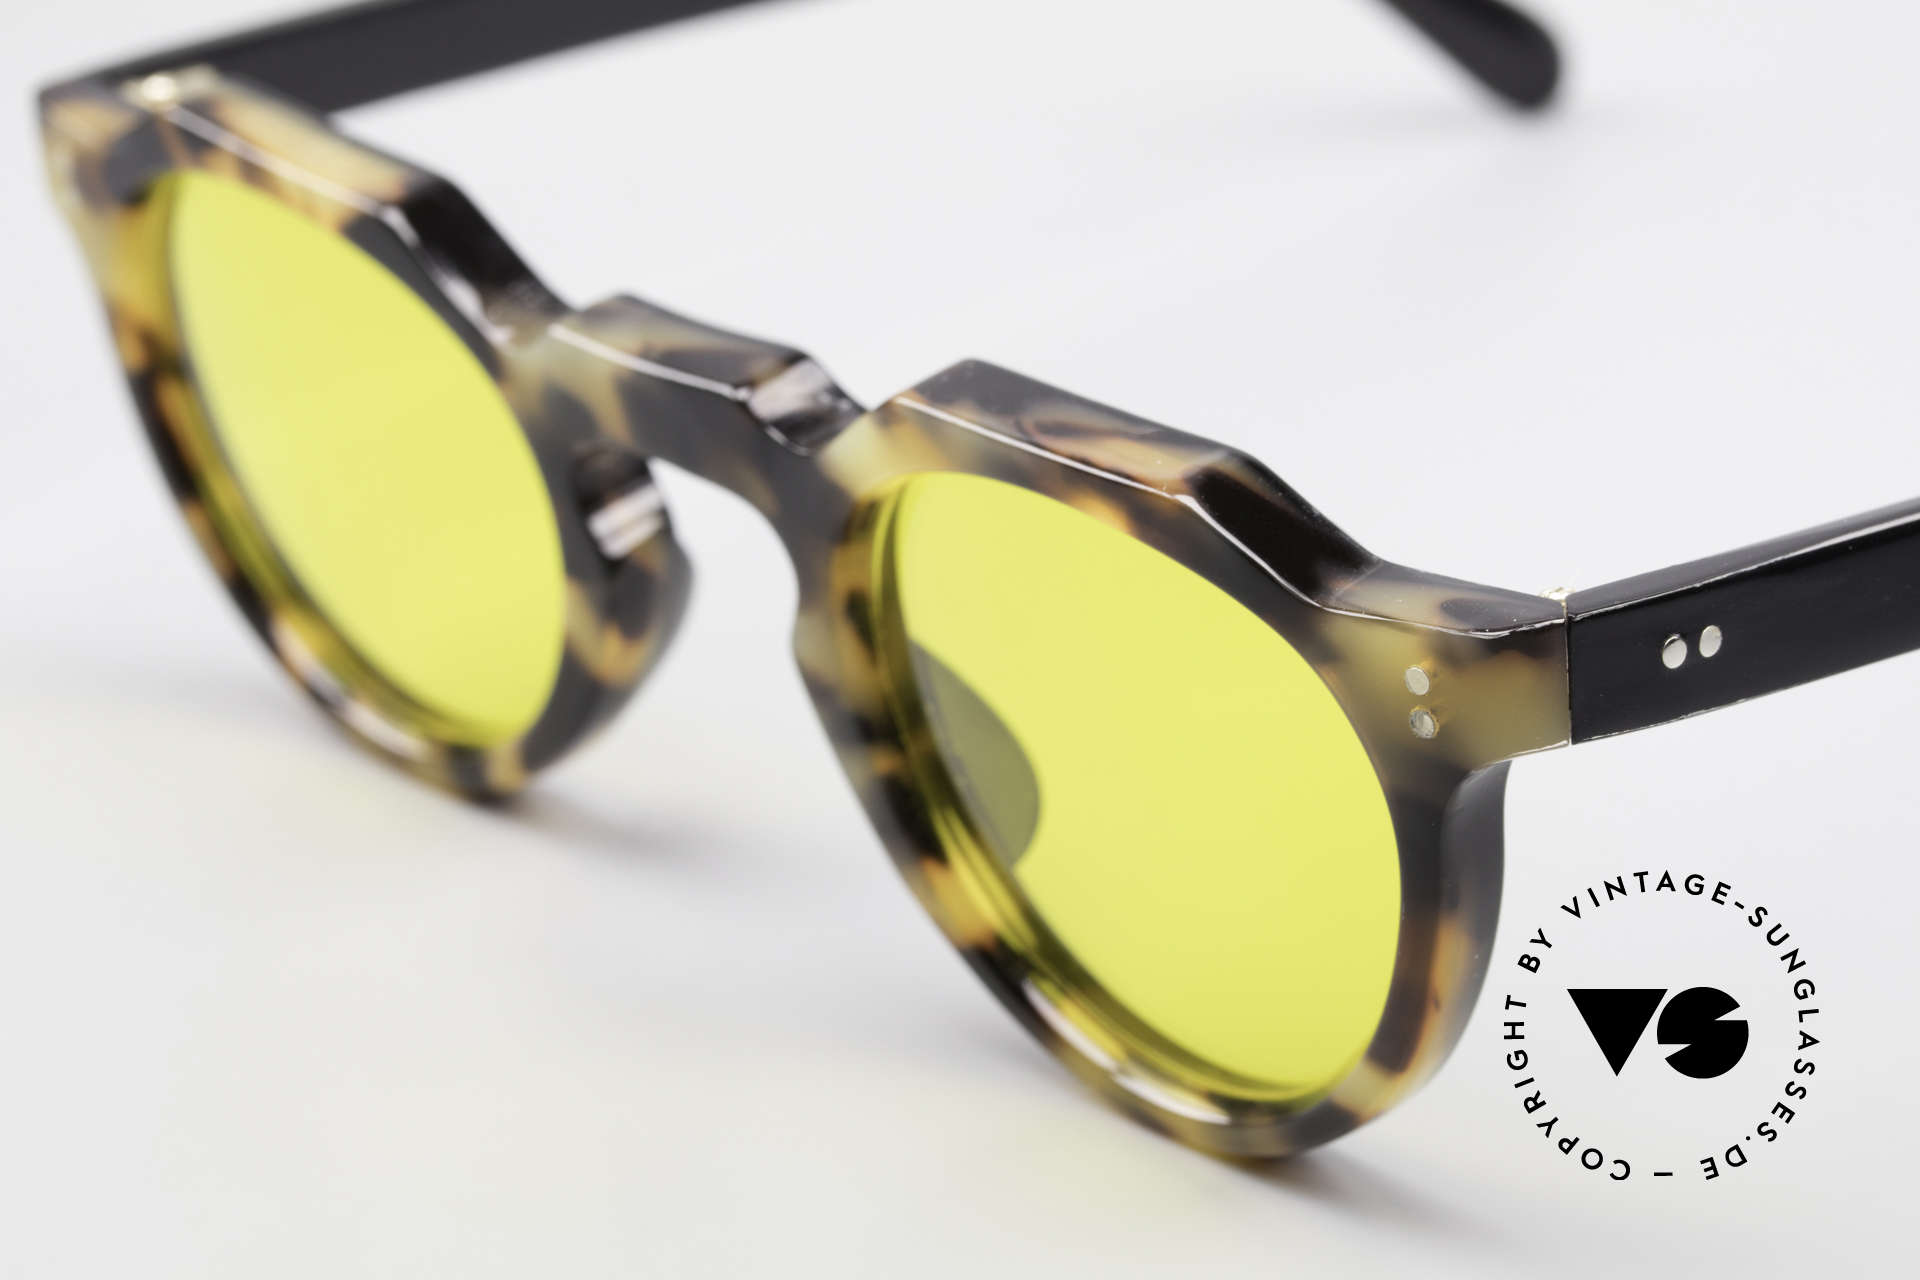 Lesca Panto 6mm 60's Panto Sunglasses France, it's a model for real VINTAGE experts / connoisseurs, Made for Men and Women